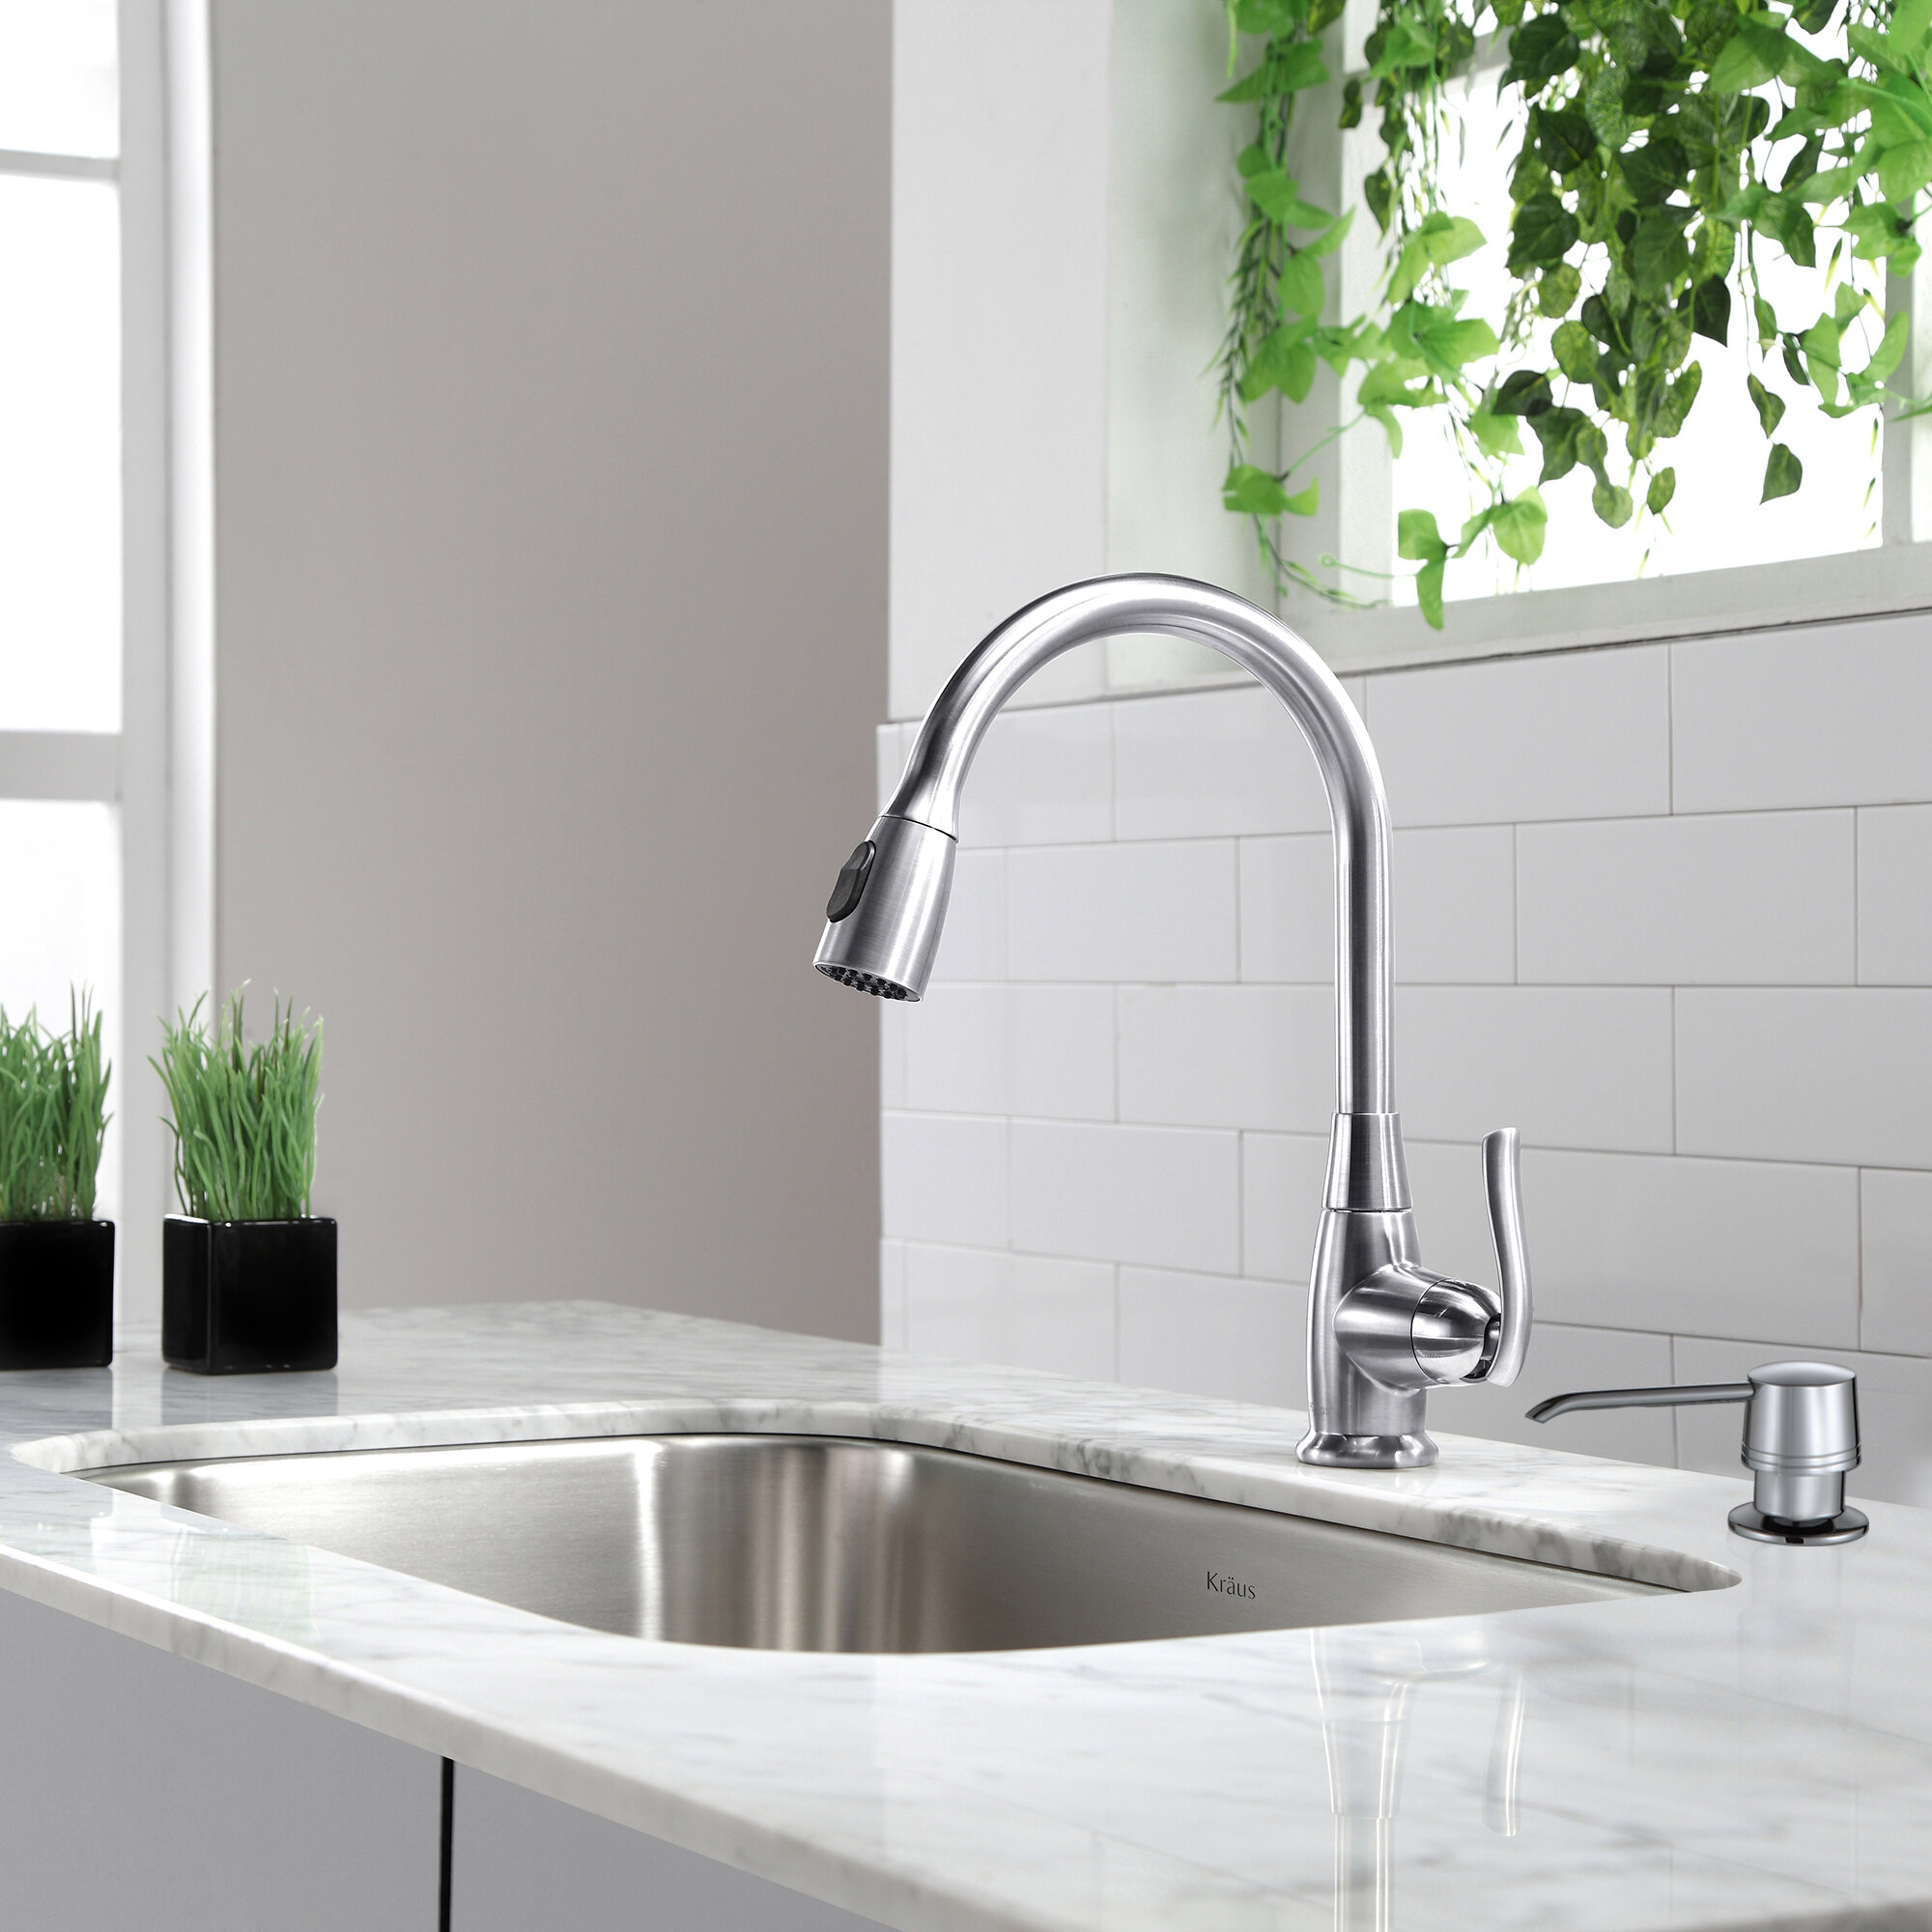 ideas american faucet design awesome faucets home kitchen standard